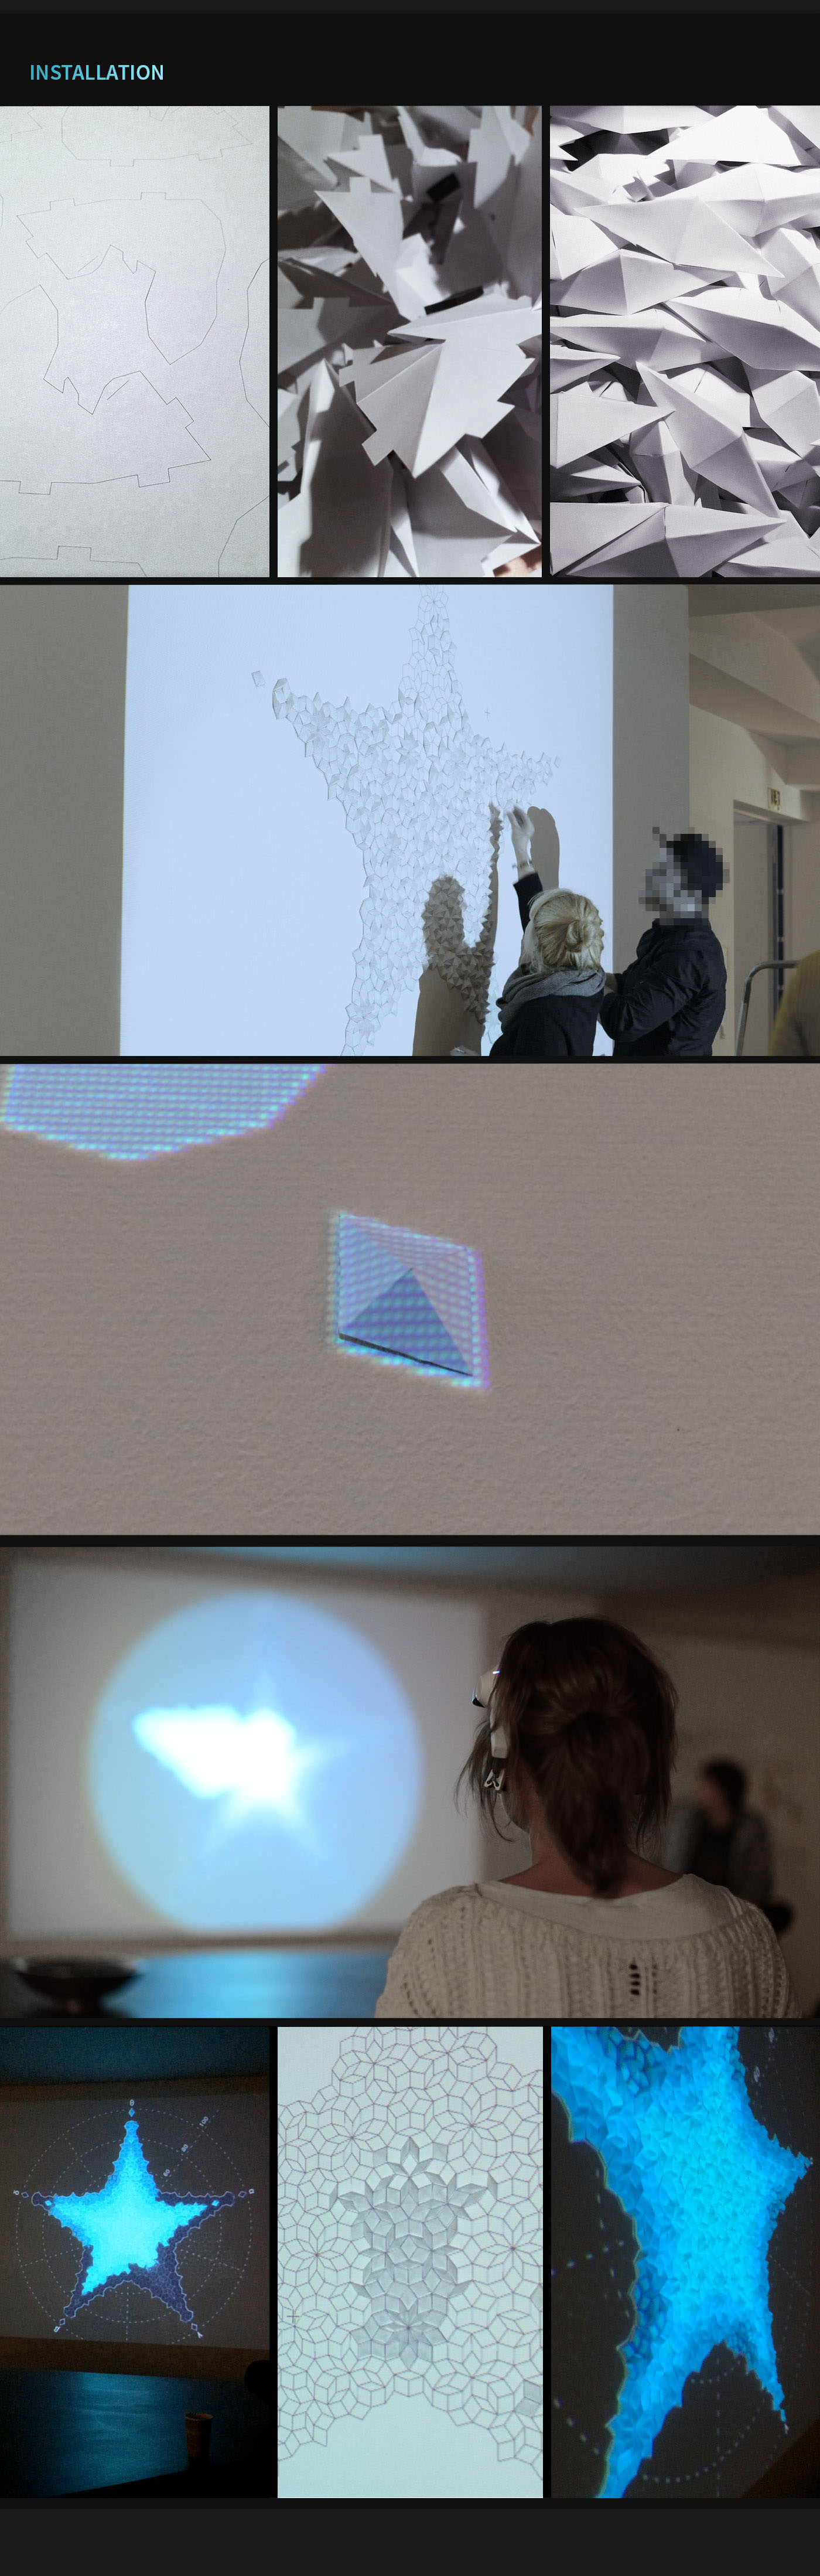 Creative Technology generative design projection mapping installation brain waves  Mindwave processing creative coding Playful